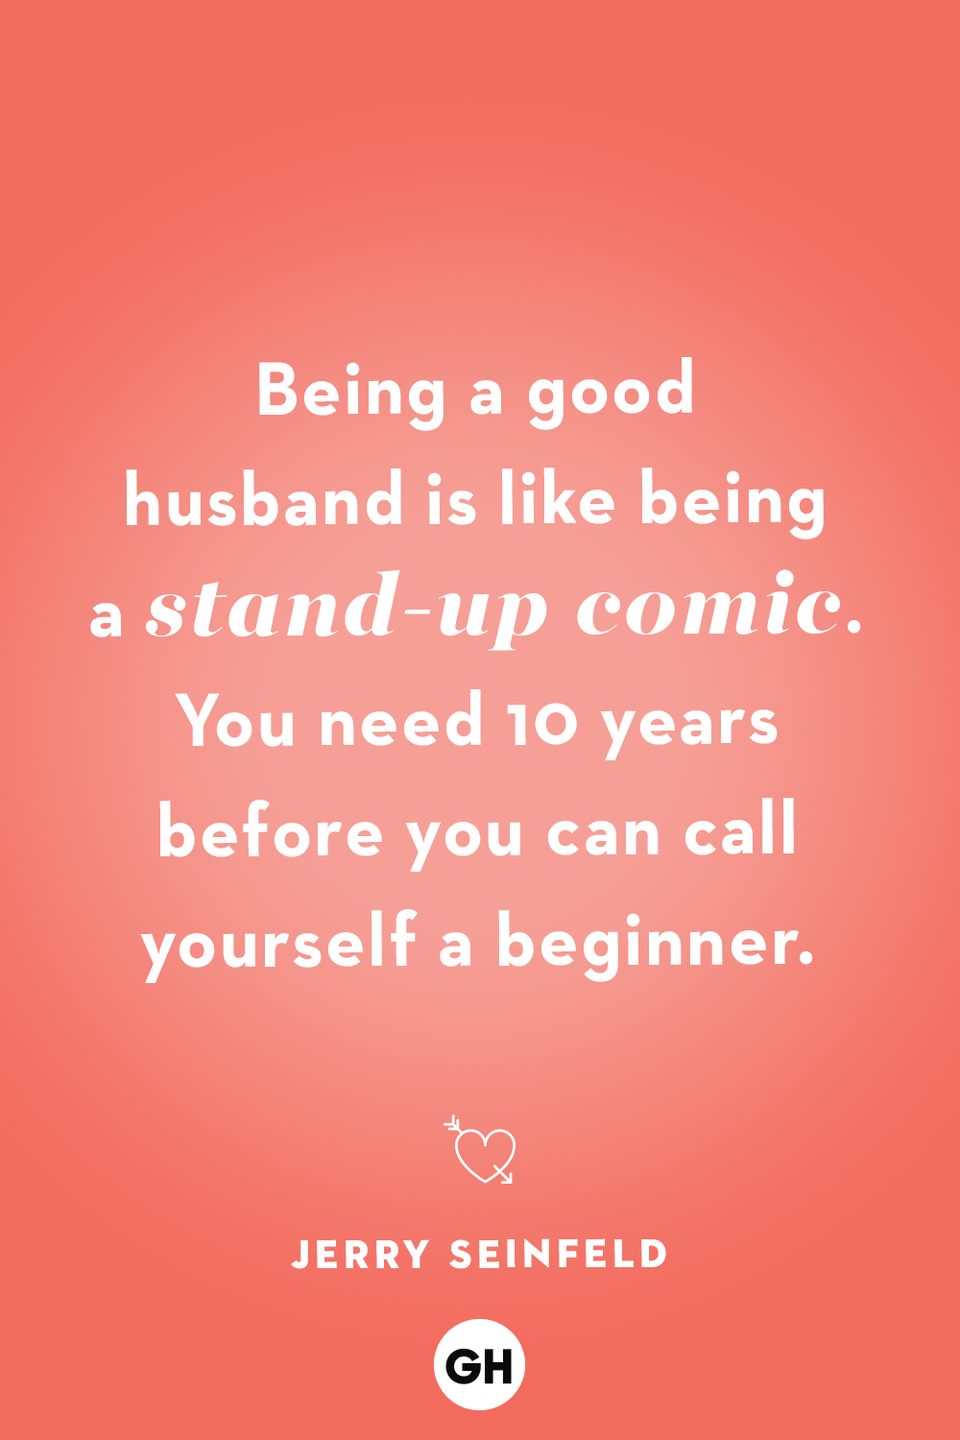 <p>Being a good husband is like being a stand-up comic. You need 10 years before you can call yourself a beginner.</p>